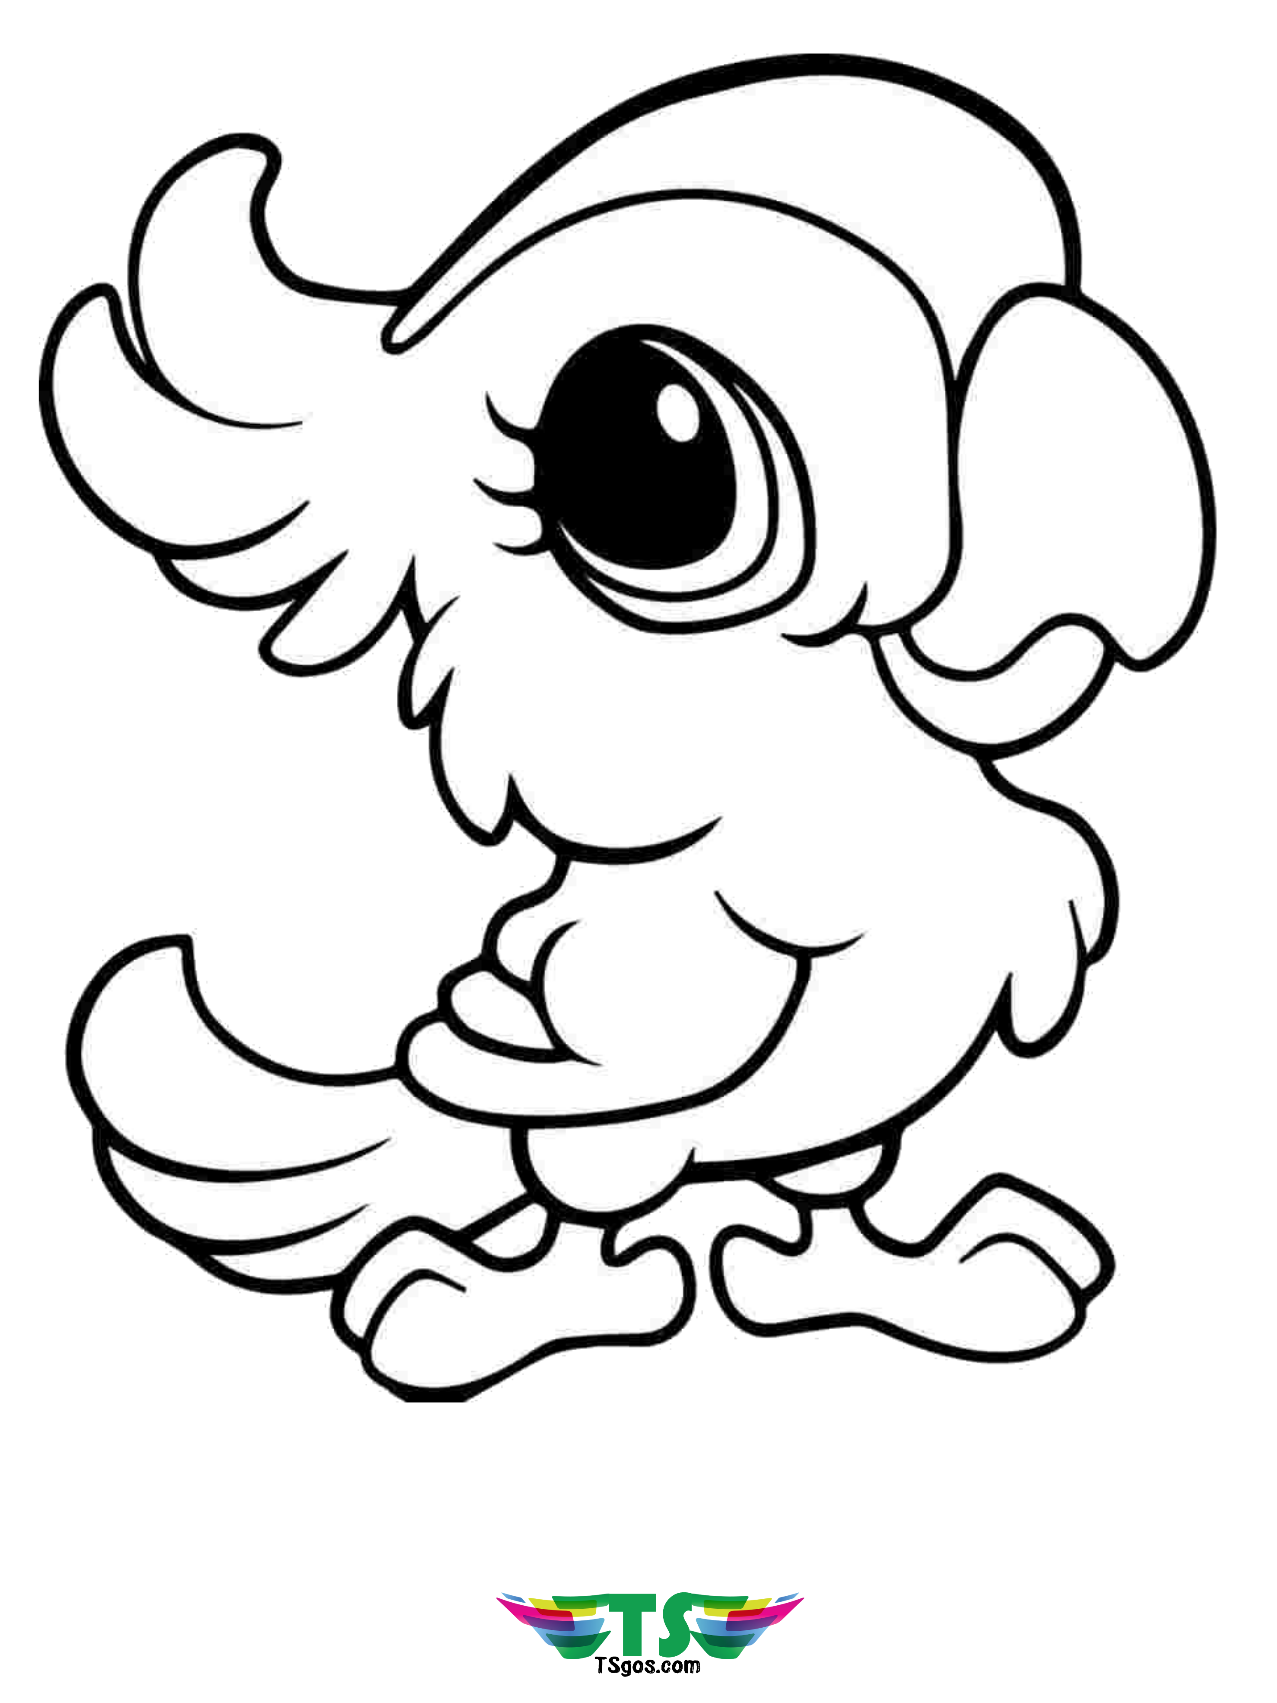 Bird colouring pages for kids